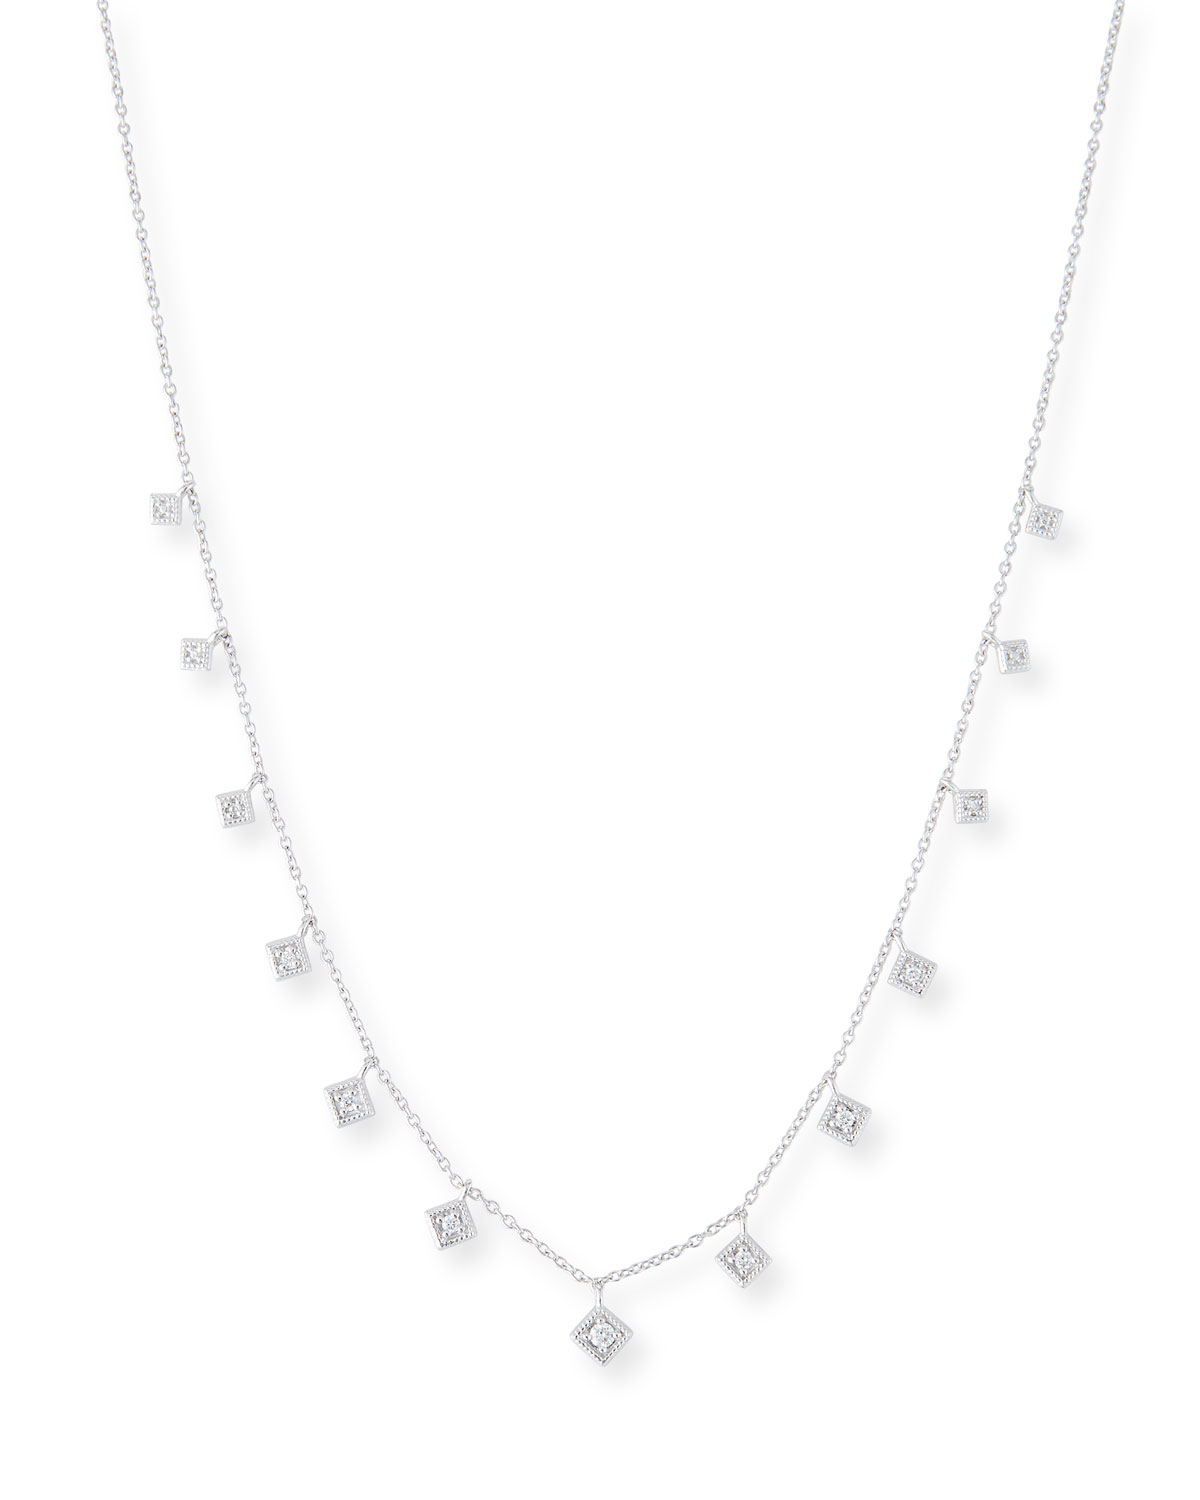 Texas Tech Classic Elegance Ladies Ring: Jude Frances 18k Lisse Dancing Diamond Necklace